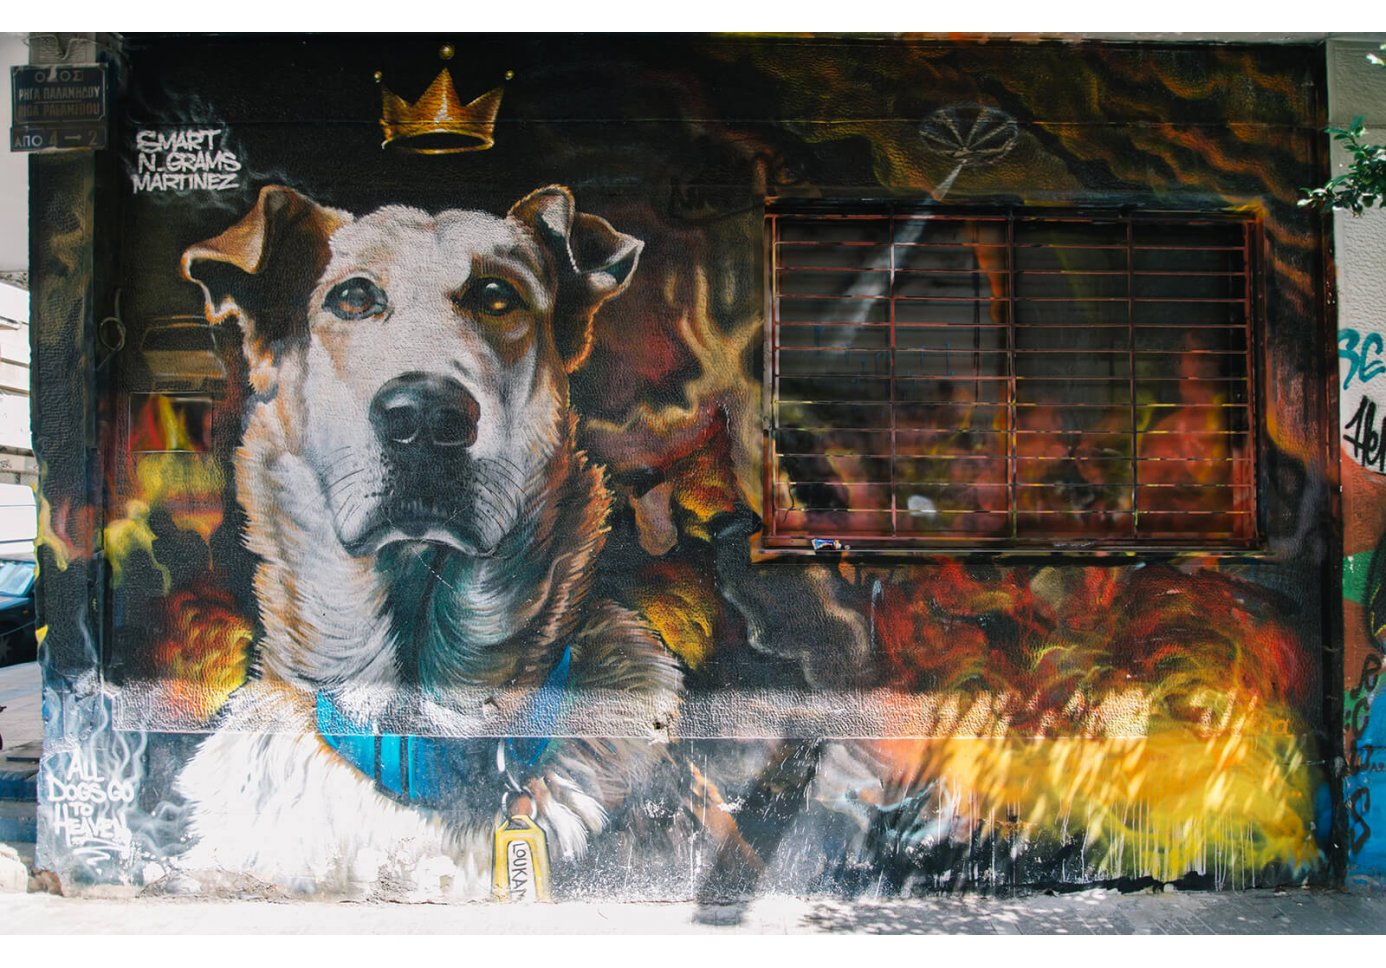 Graffiti of a dog